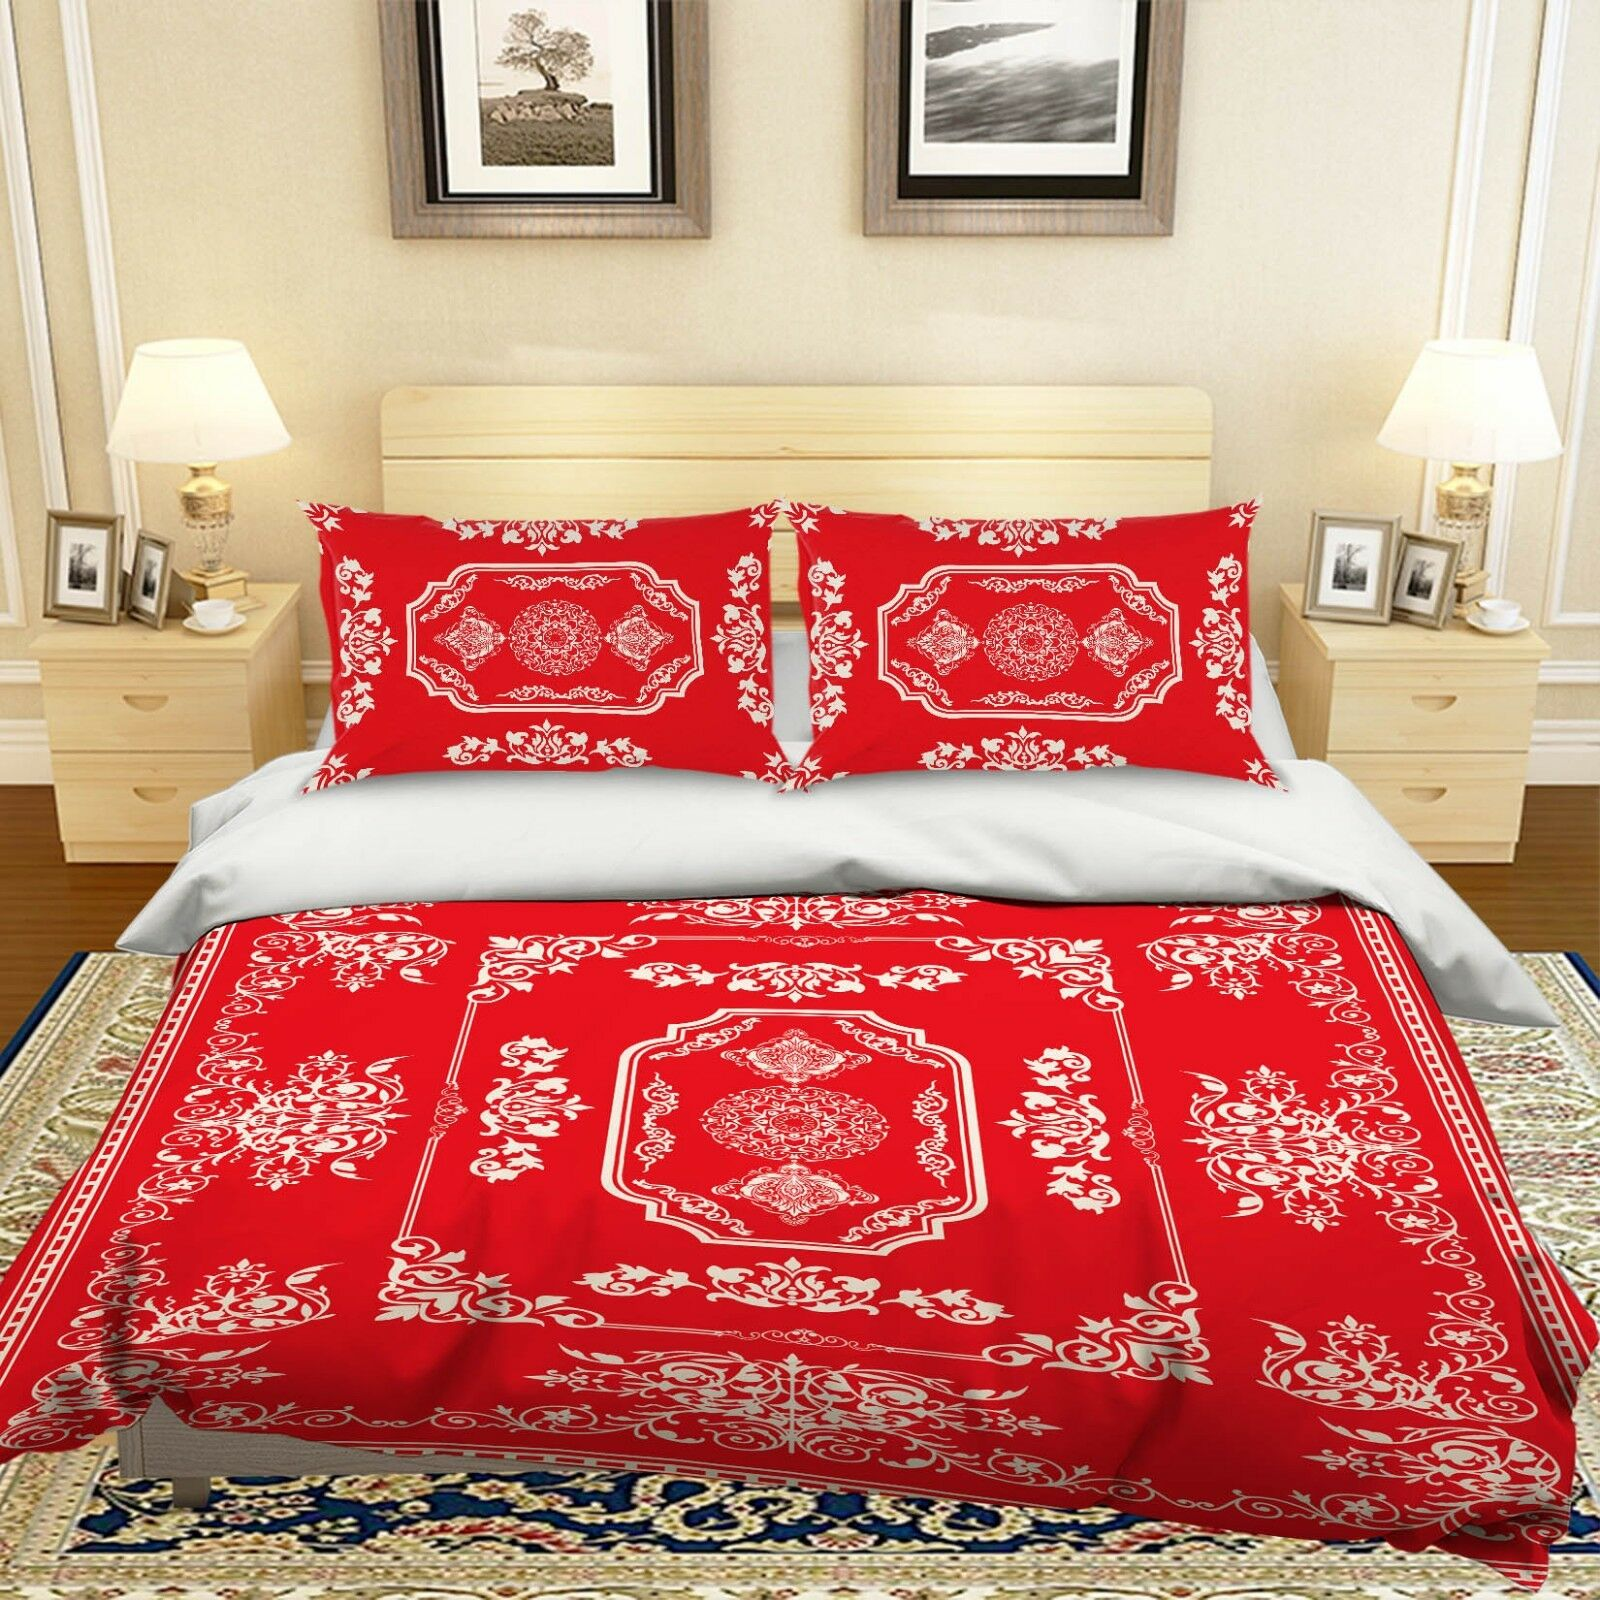 3D Red Totem Paint 99 Bed Pillowcases Quilt Duvet Cover Set Single Queen King CA